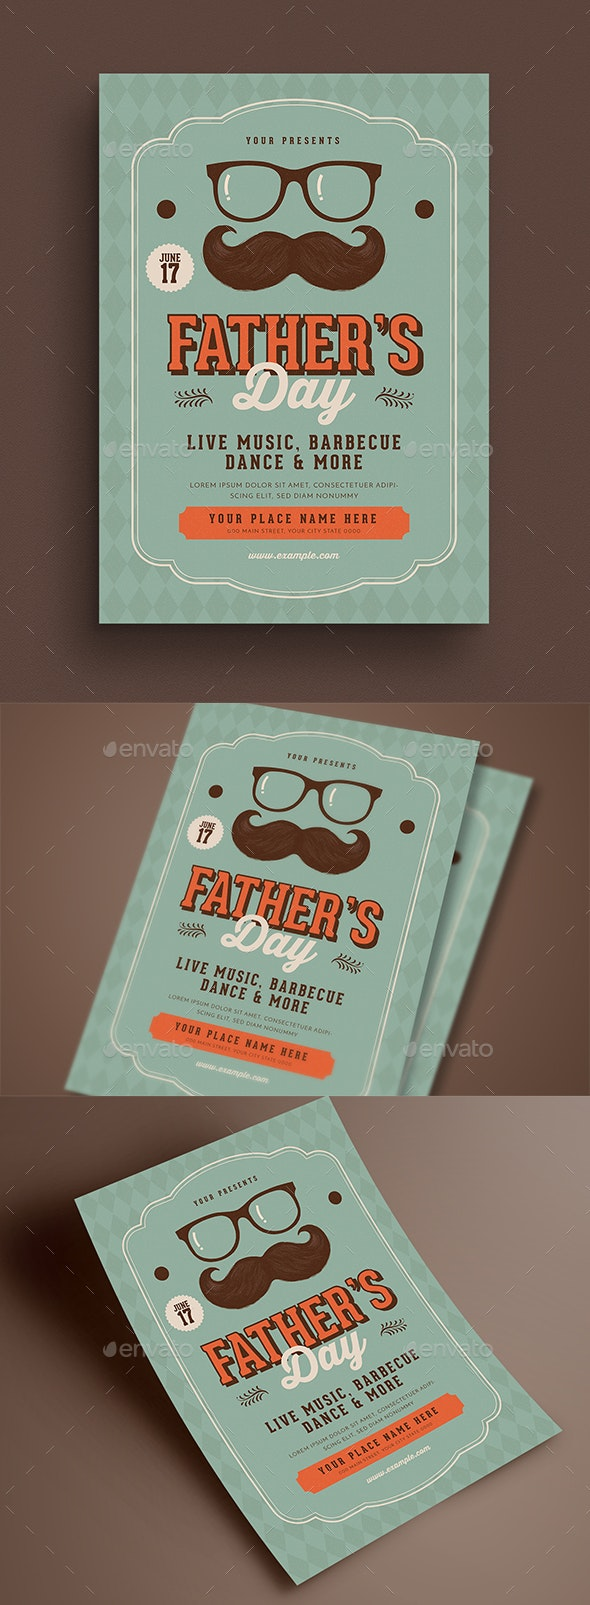 Father's Day Event Flyer - Events Flyers